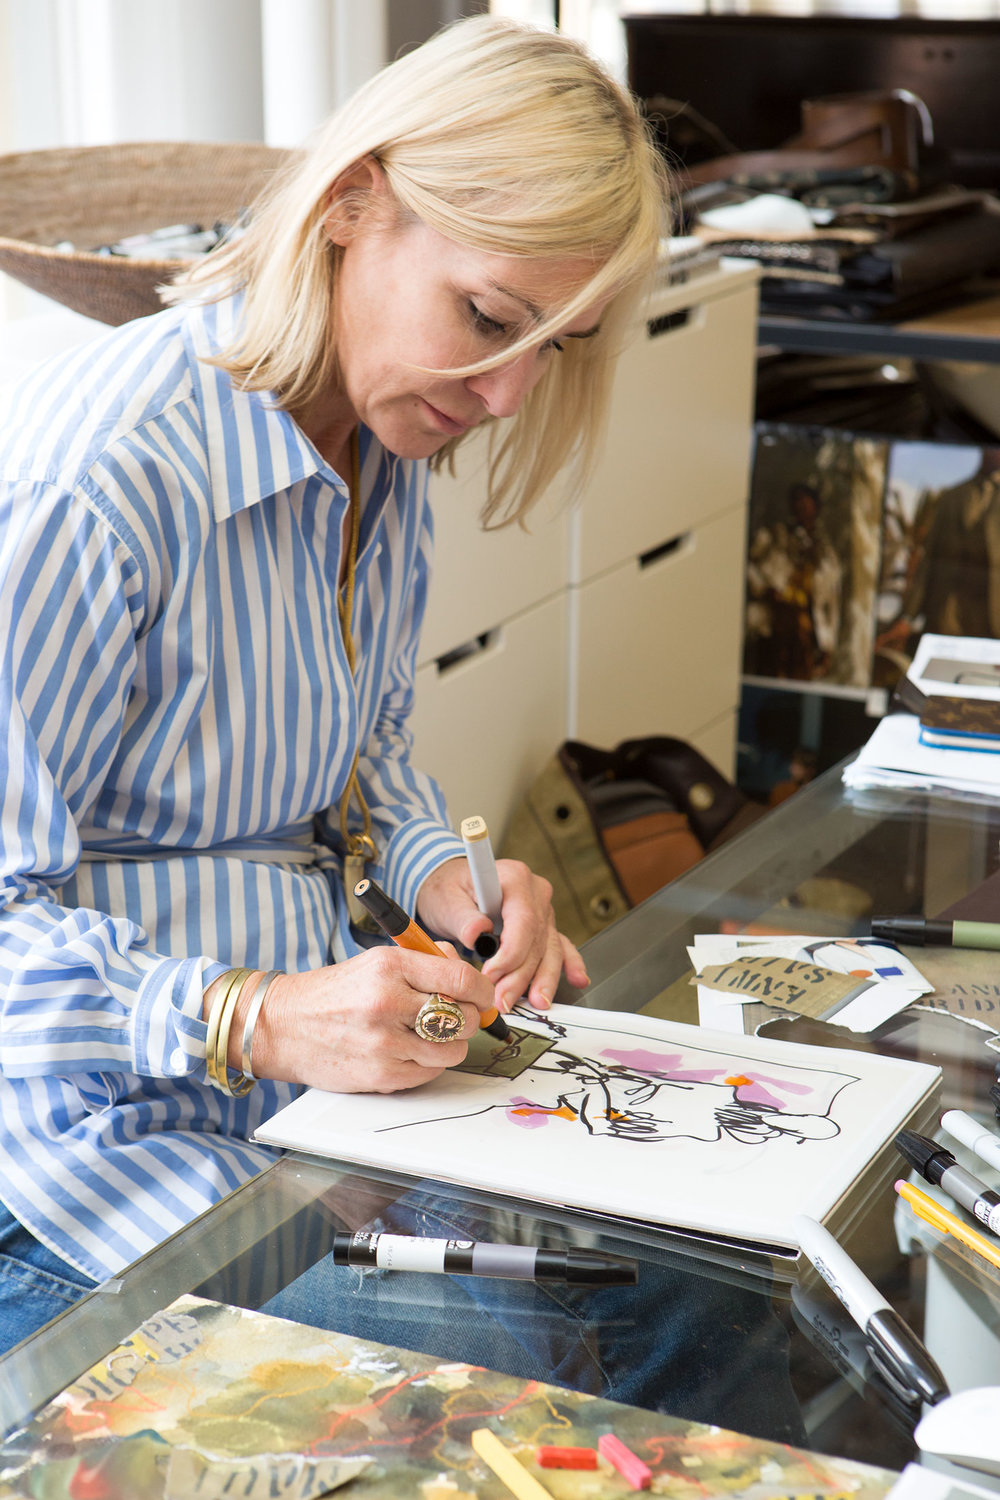 Formby sketching at her desk.